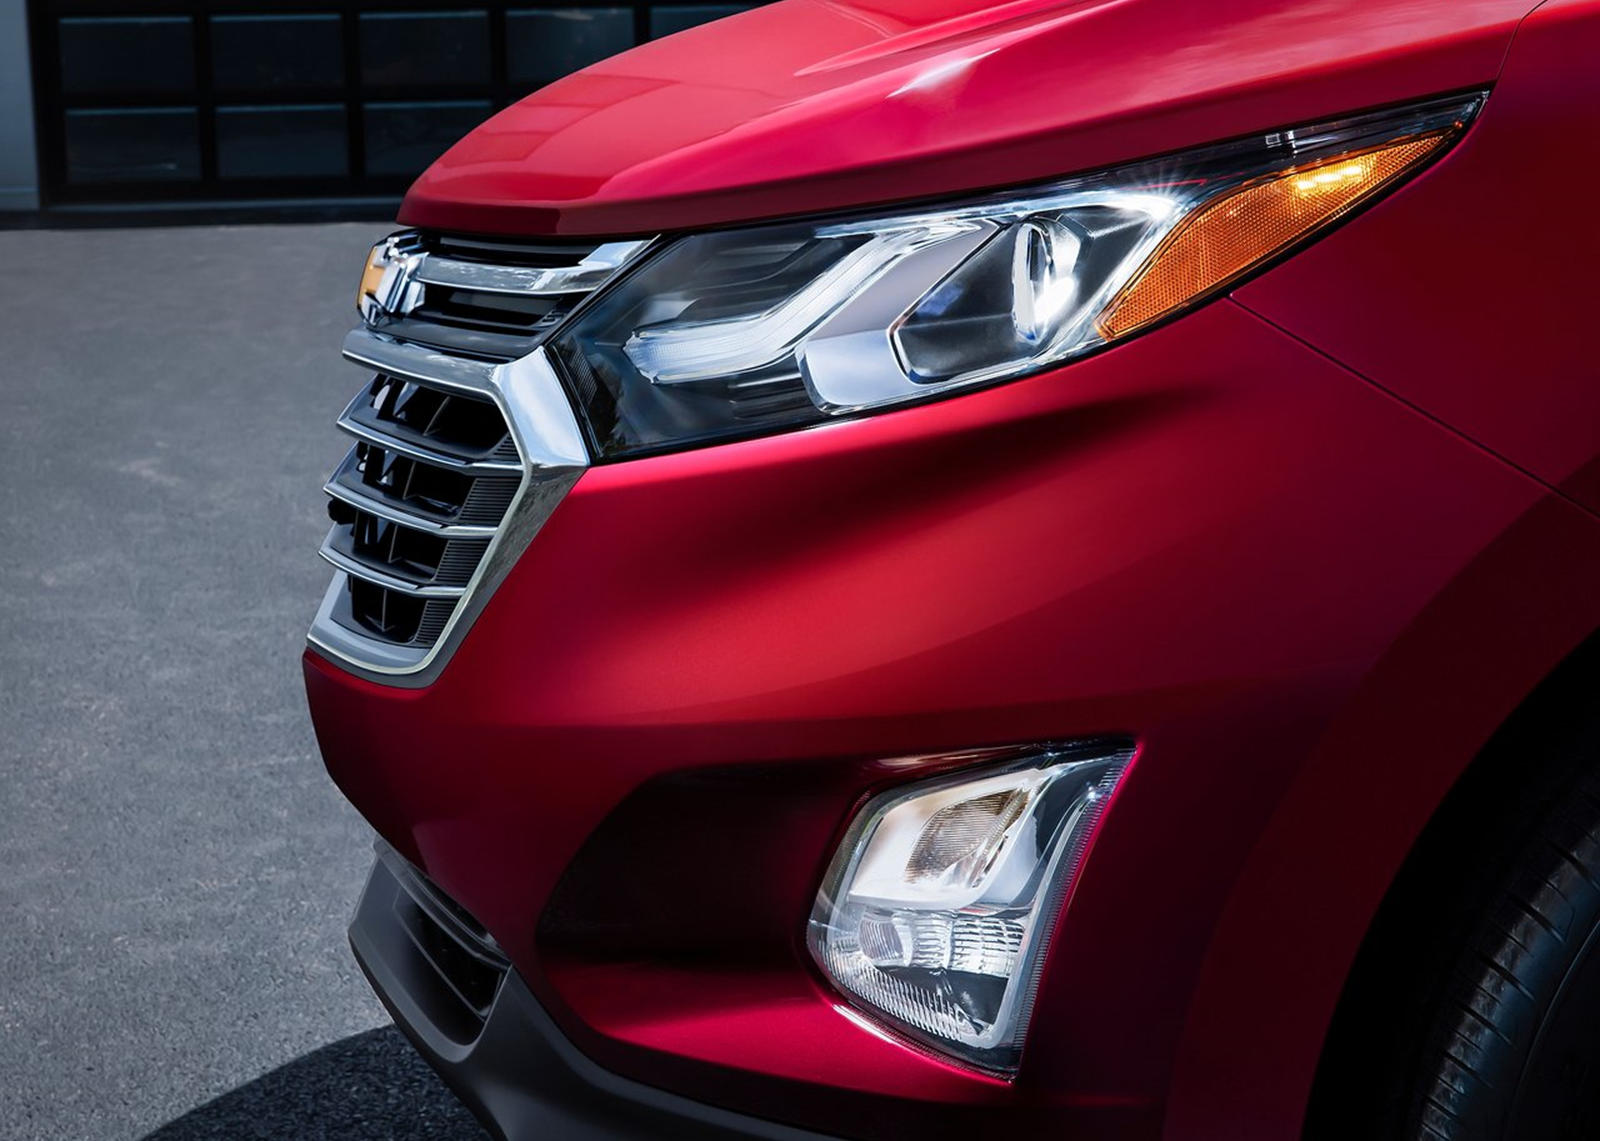 Chevrolet Offering Major Discount For An Already Hot-Seller